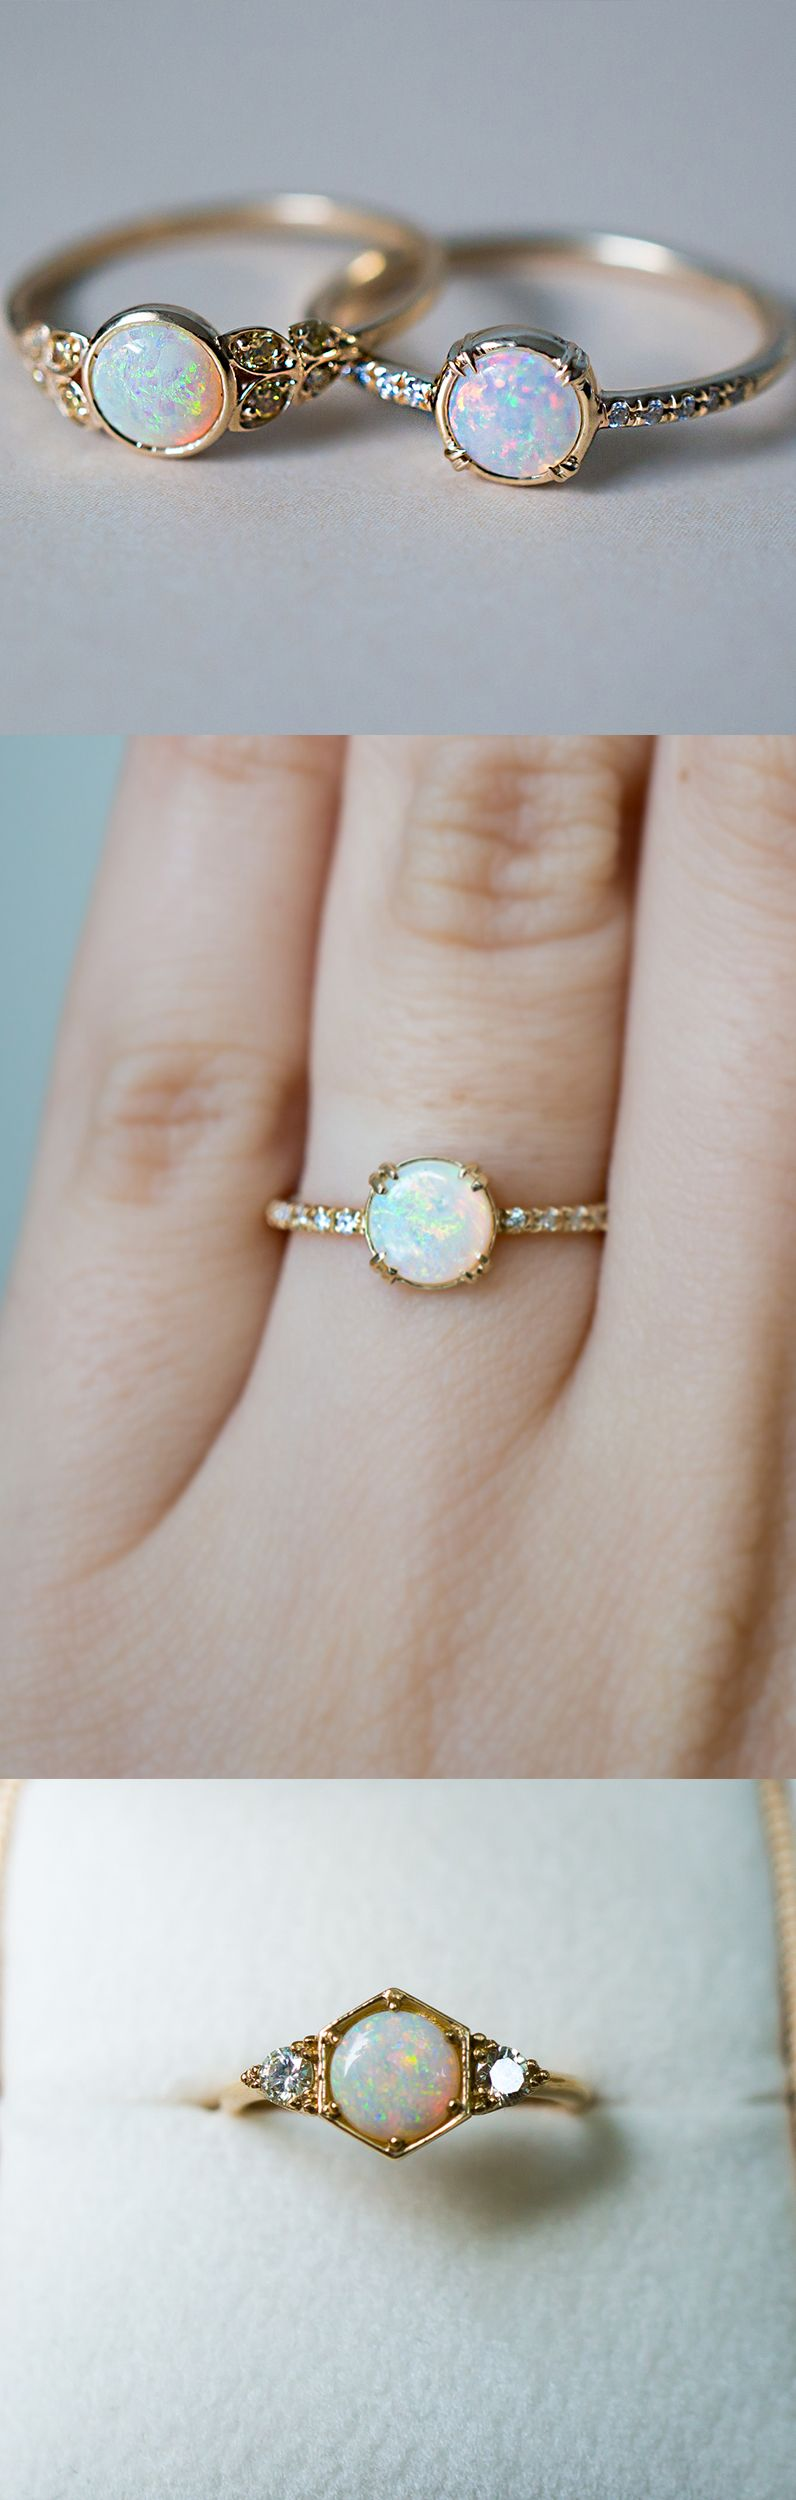 One of a kind opal engagement rings inspired by vintage style